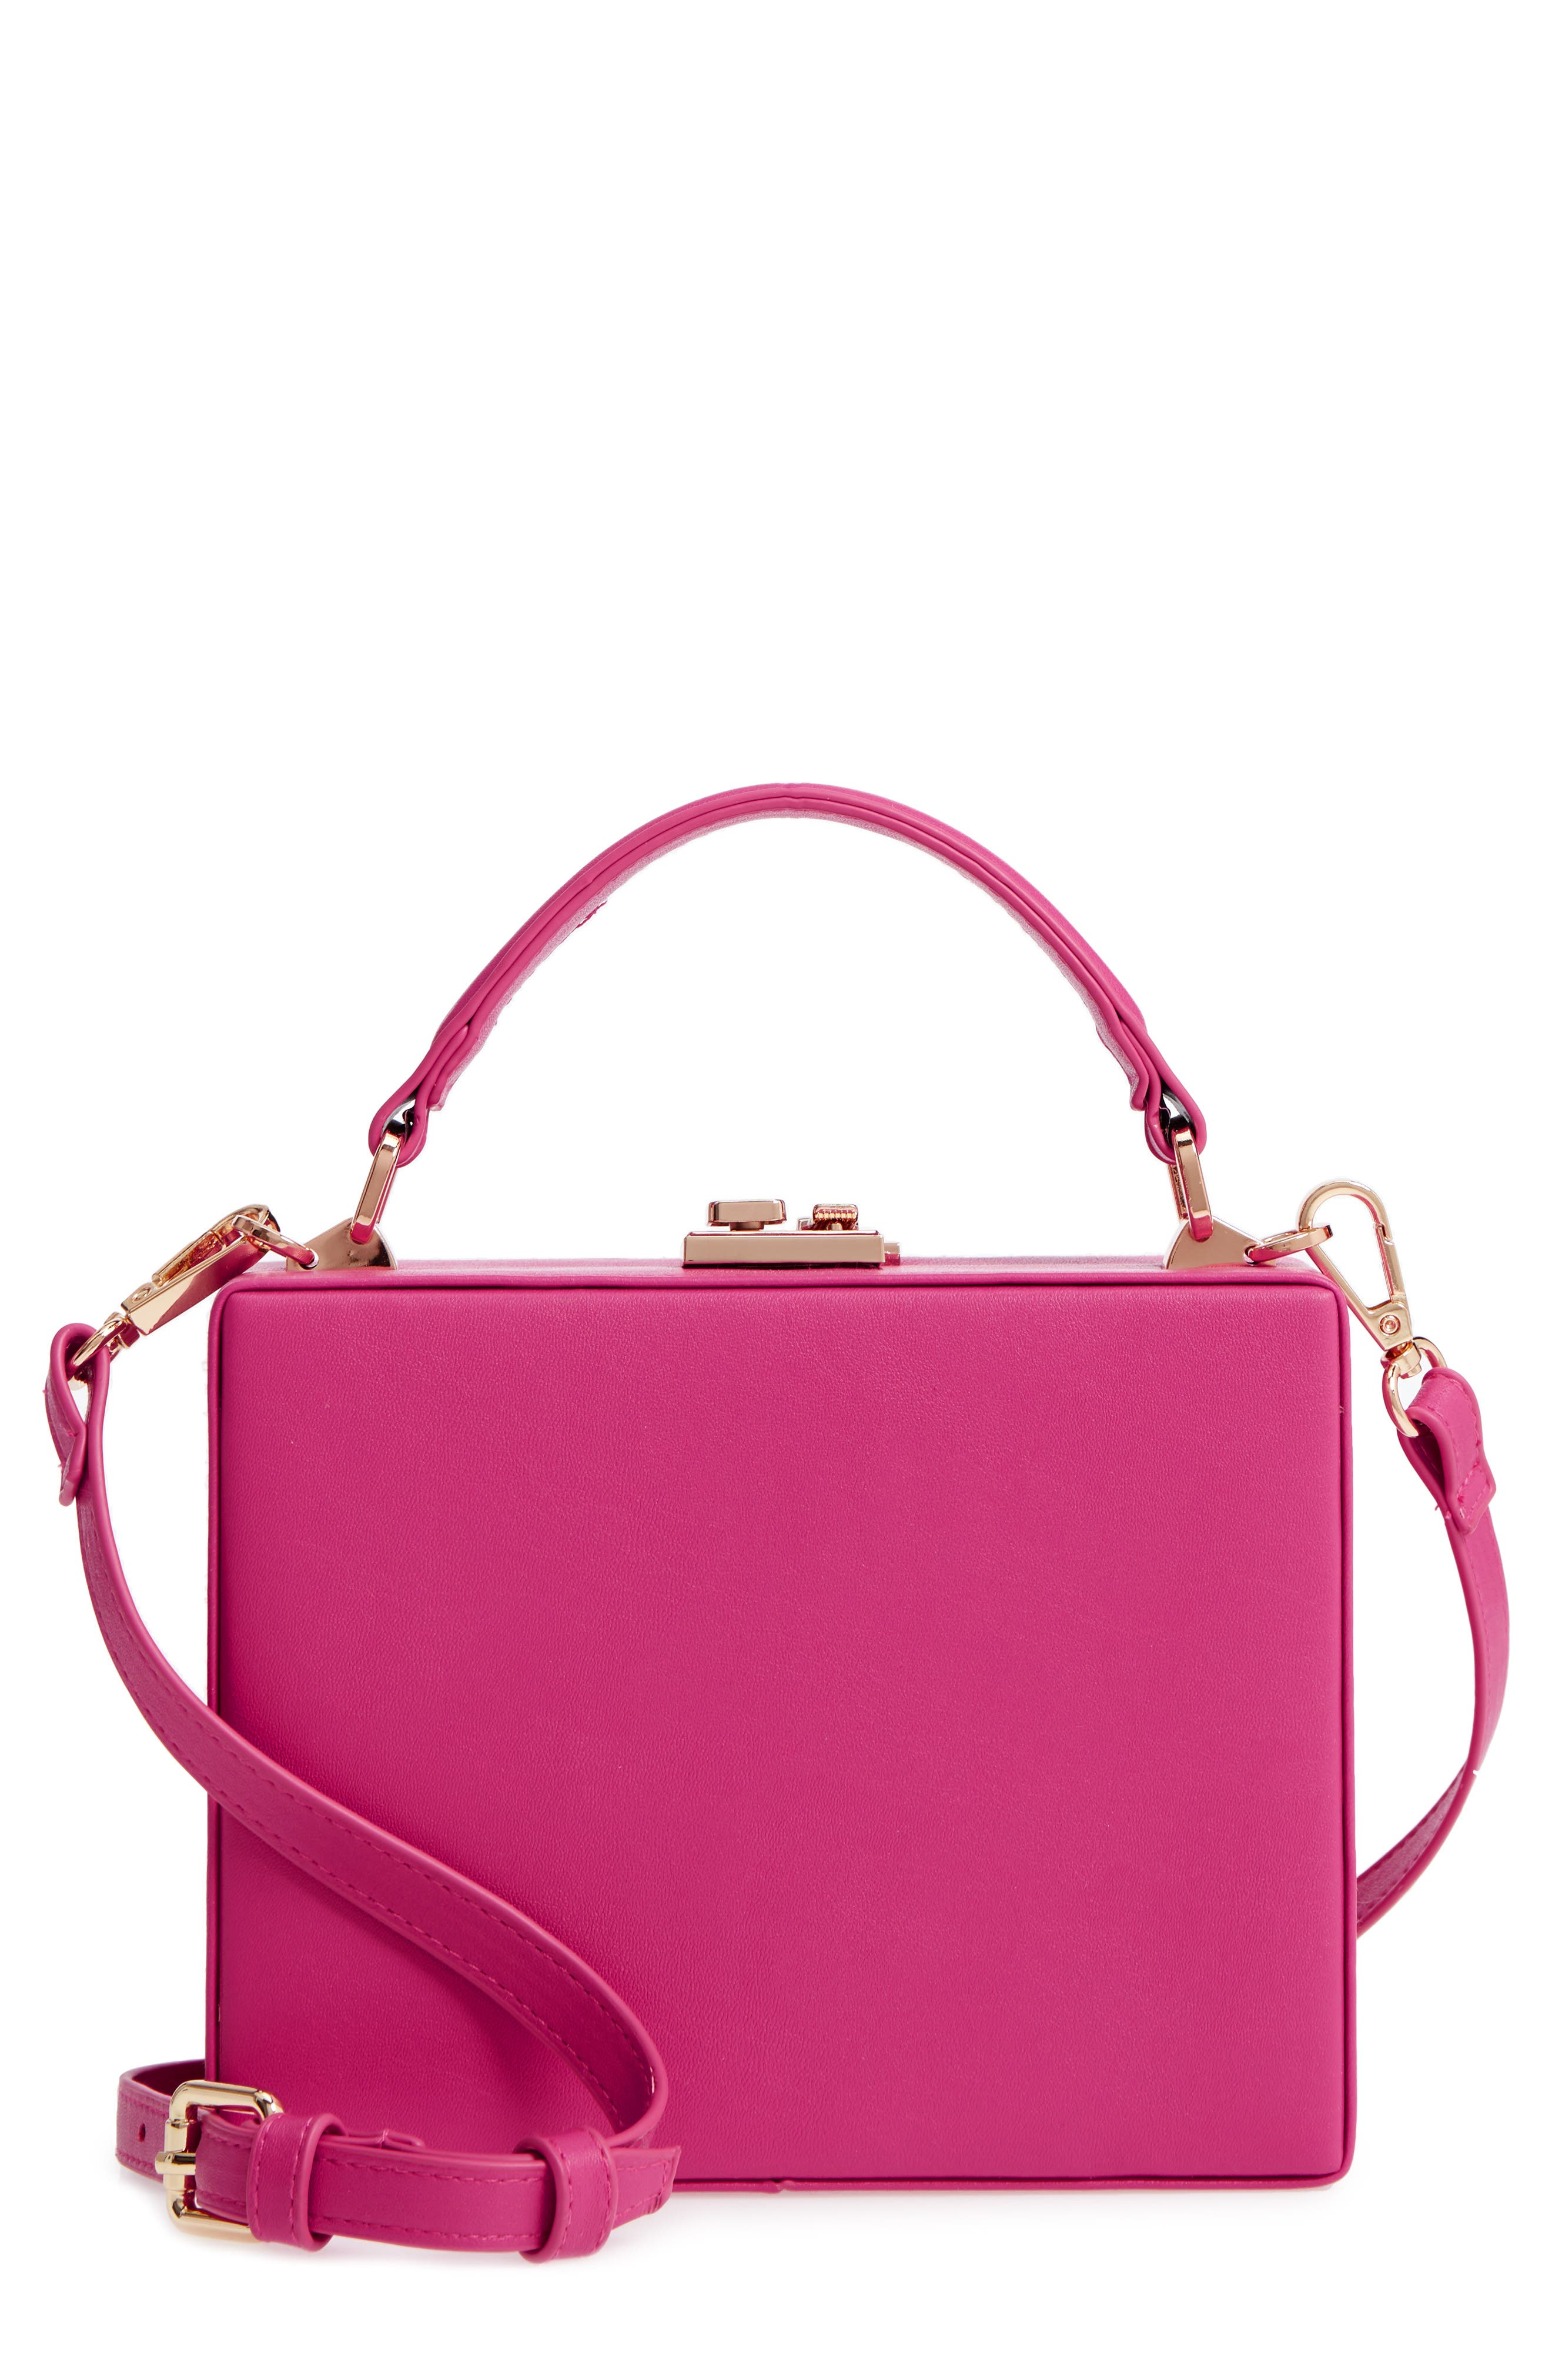 STREET LEVEL FAUX LEATHER CROSSBODY BAG - PINK